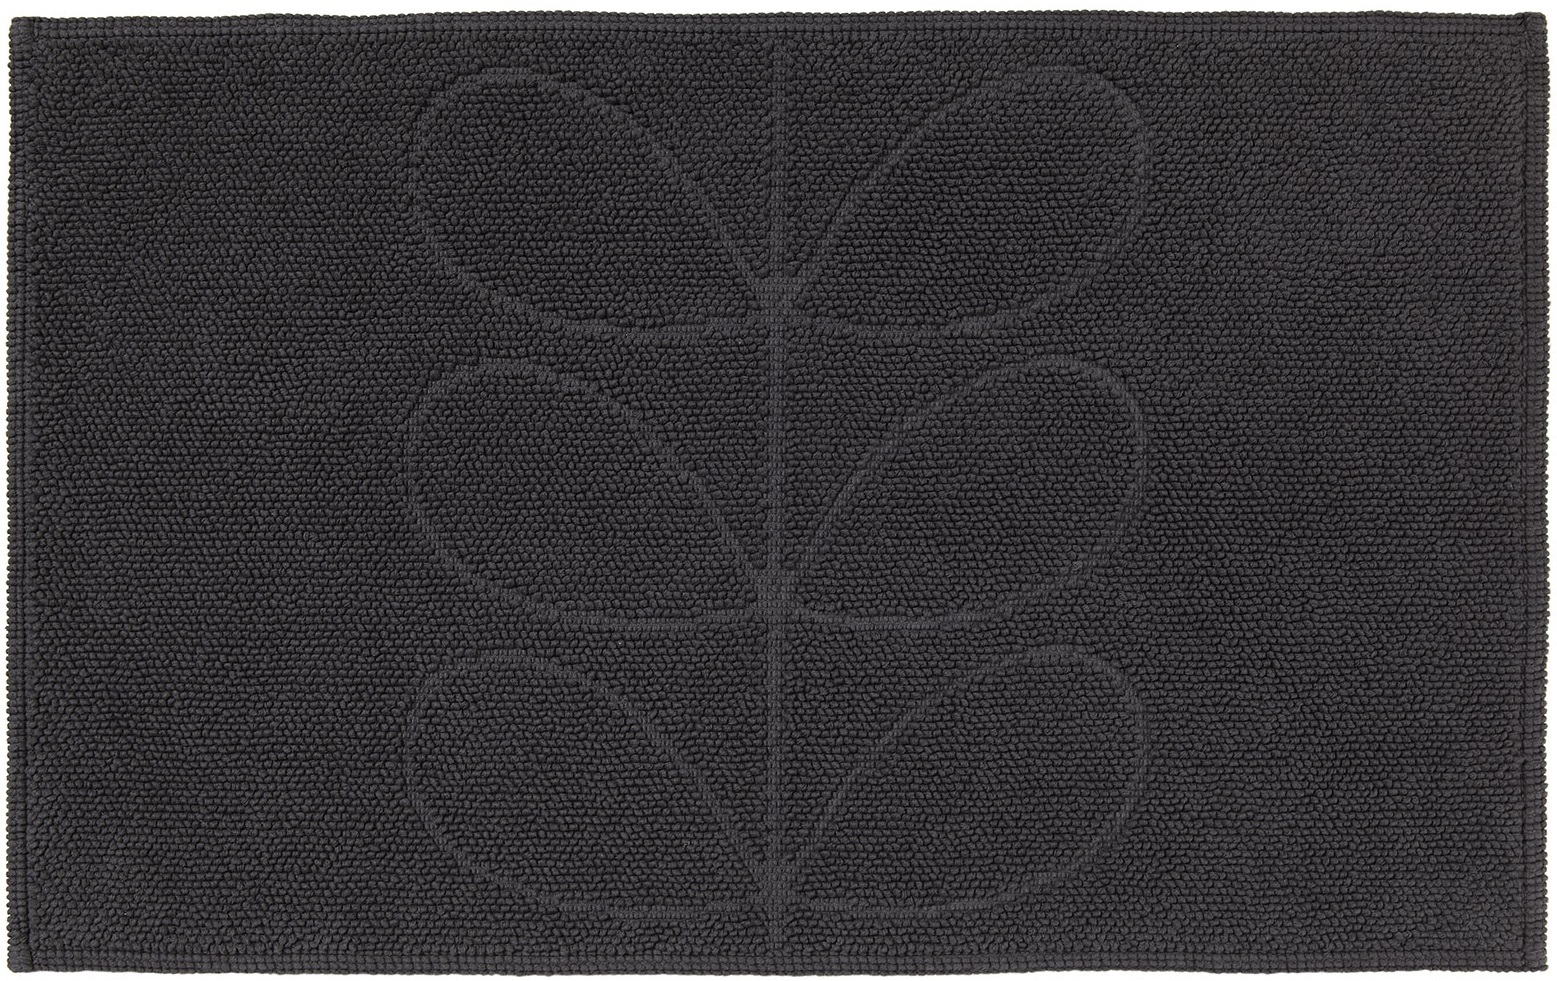 Orla Kiely Sculpted Stem Luxury Bathroom Mat - Slate image